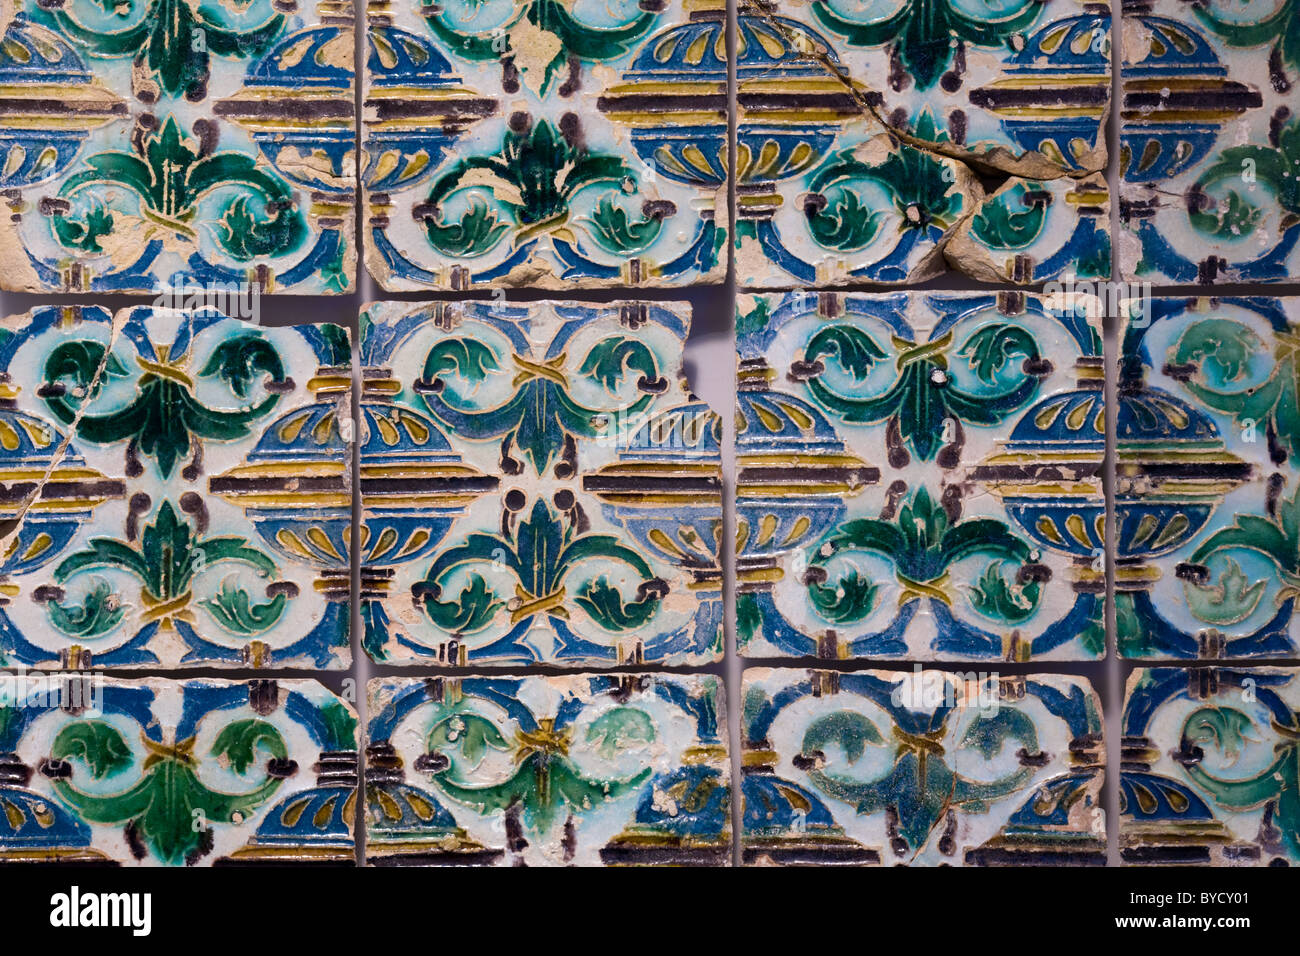 Ancient azulejos (tiles), Alfama, Lisbon, Portugal Stock Photo